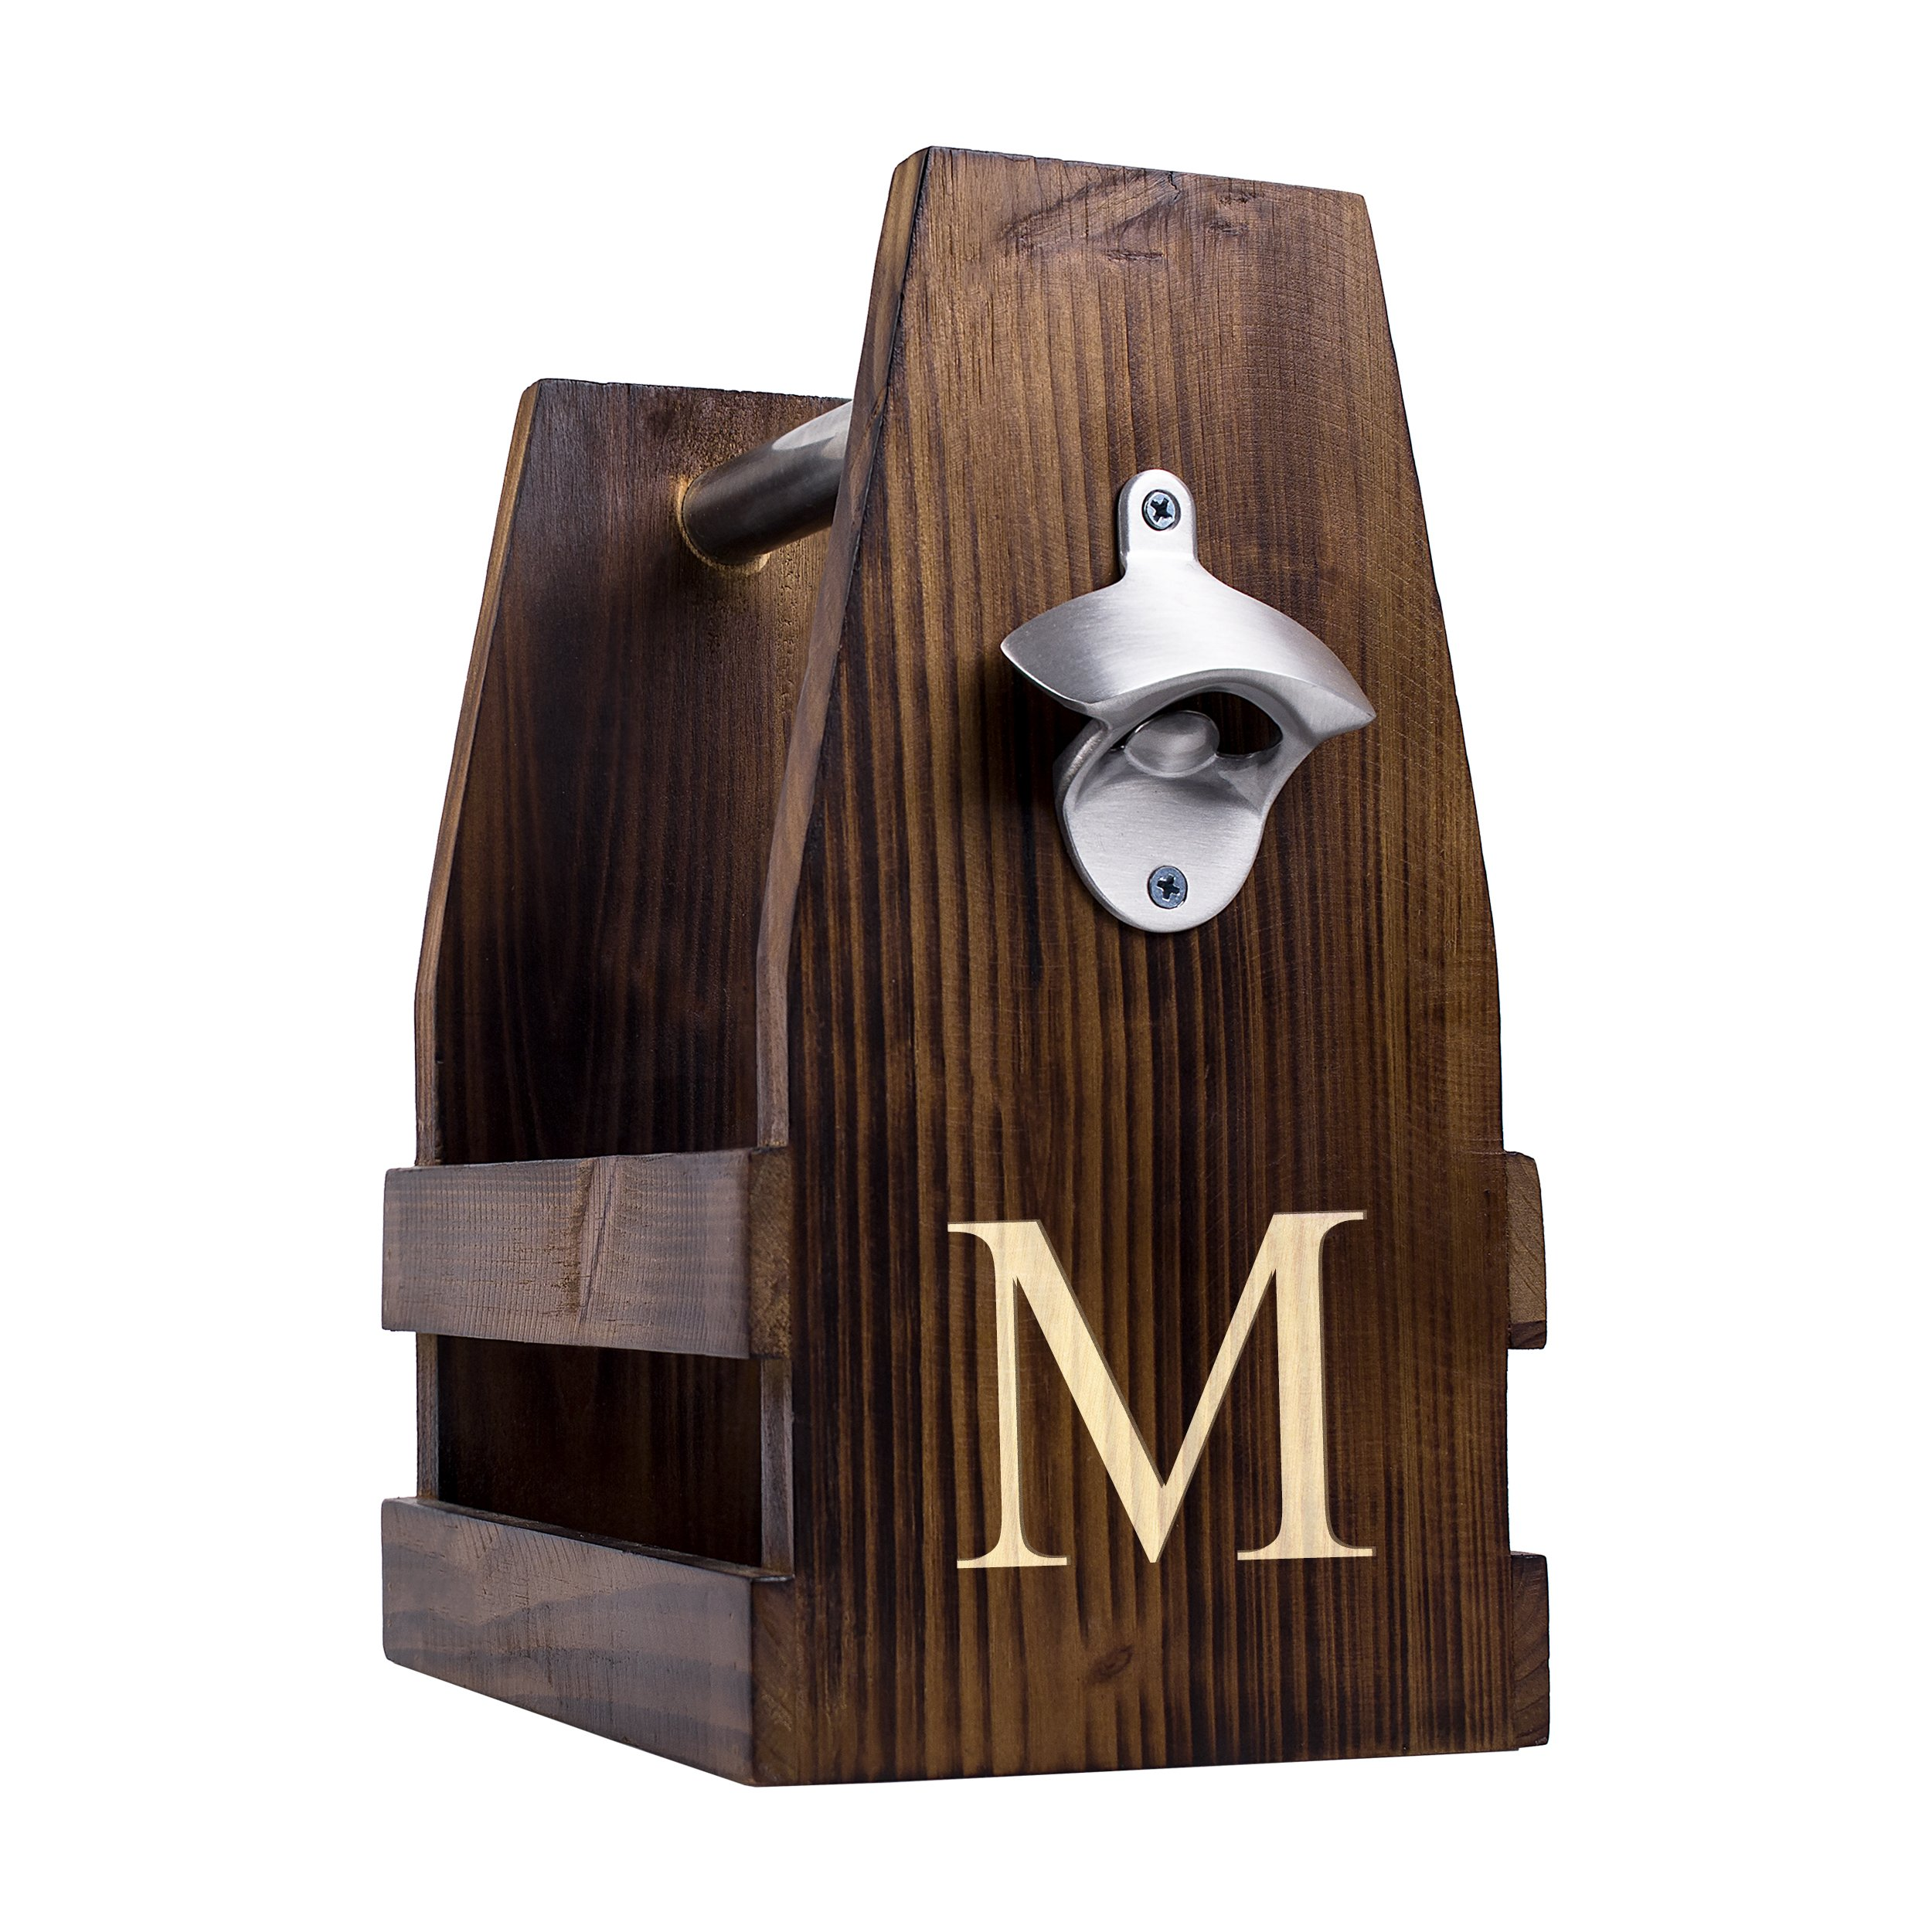 Cathy's Concepts Personalized Rustic Craft Beer Carrier with Bottle Opener, Letter M